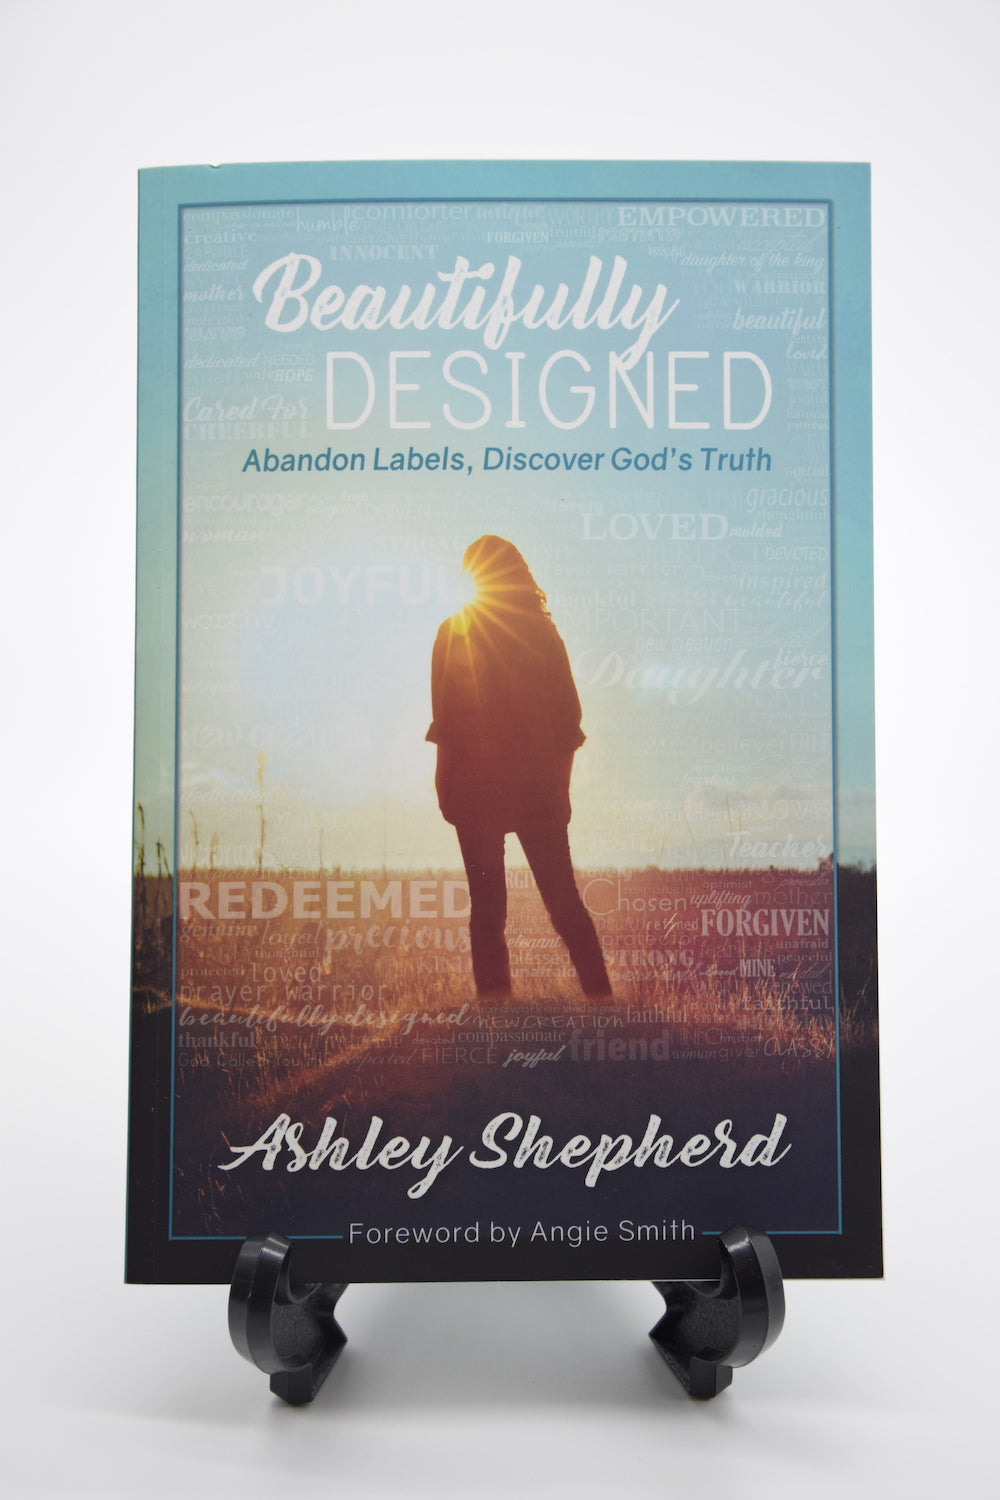 Beautifully Designed: Abandon Labels, Discover God's Truth by Ashley Shepherd